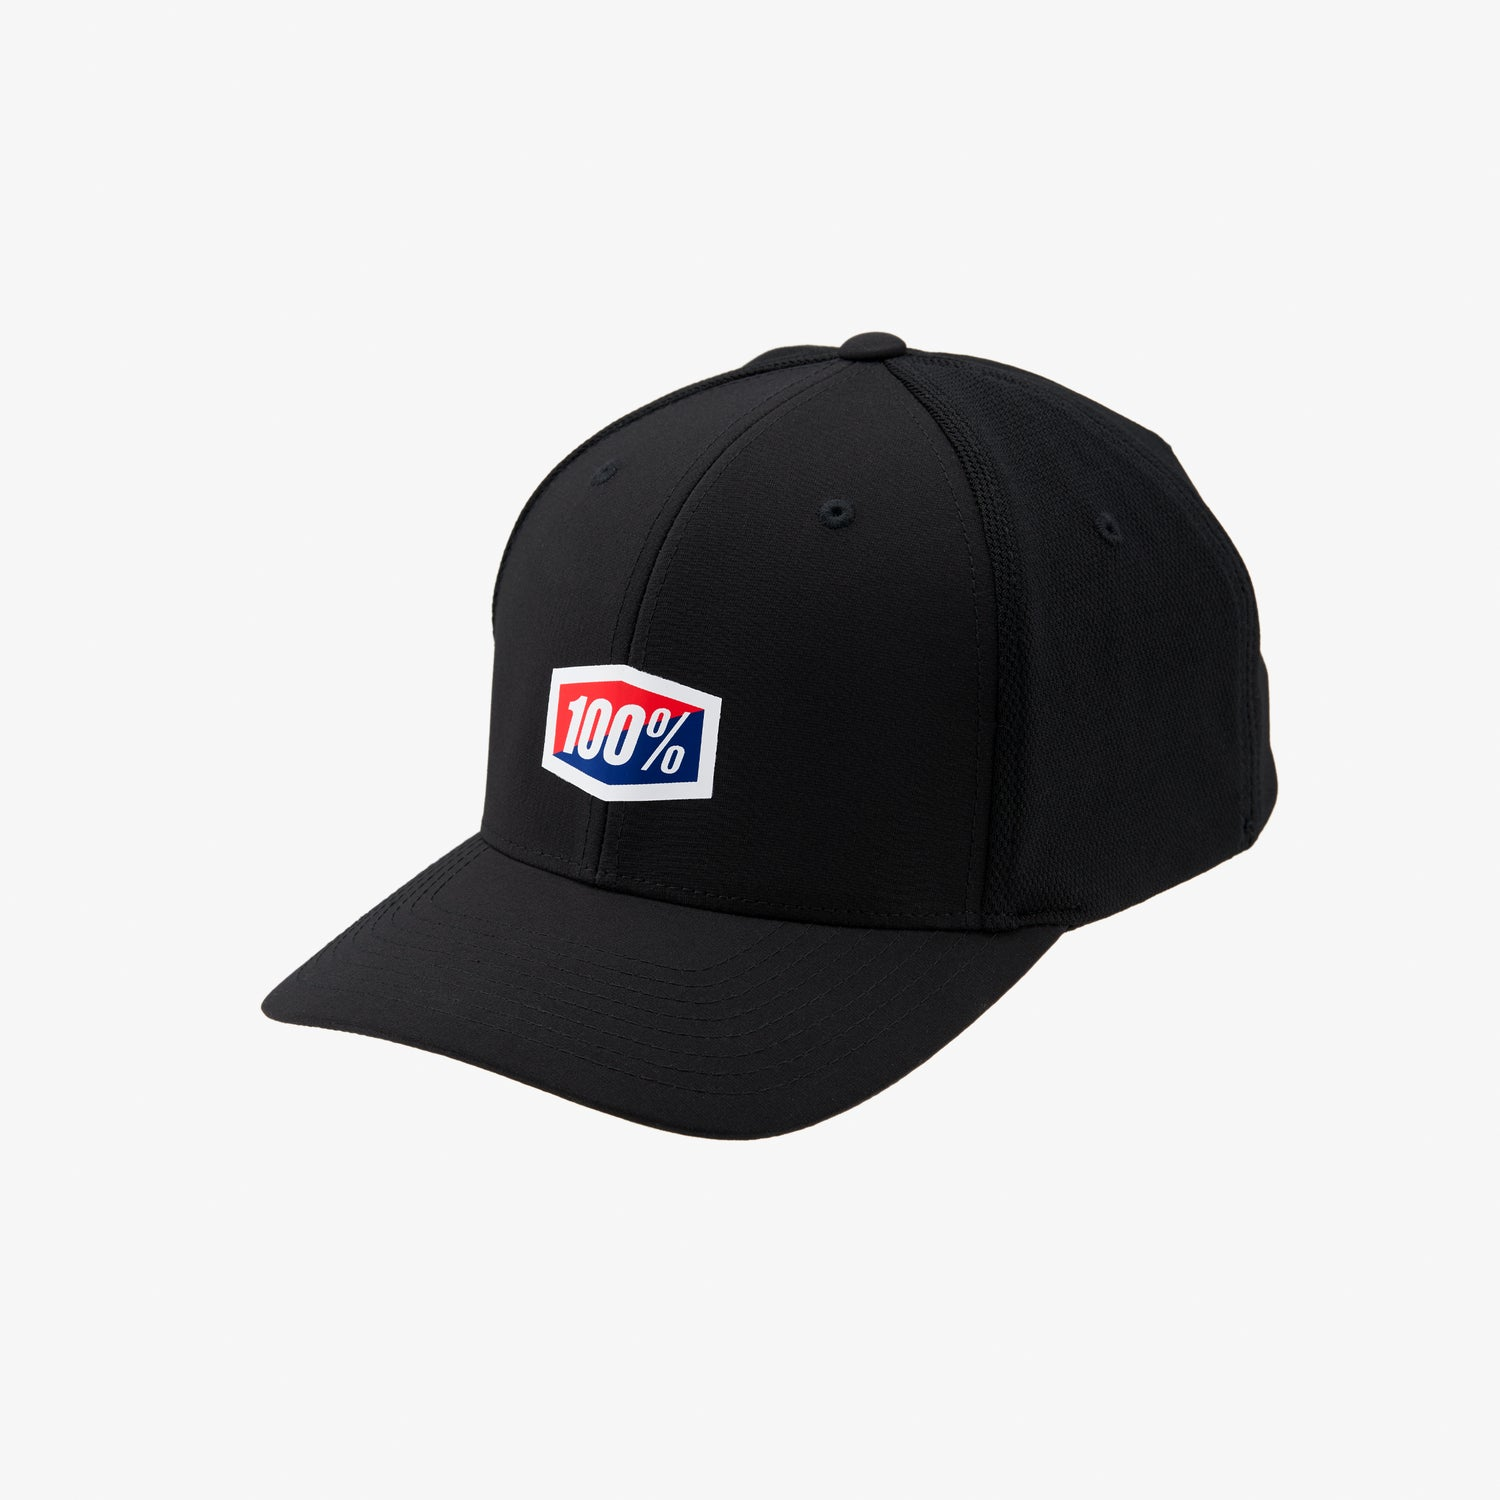 CONTACT X-Fit Snapback Hat Black